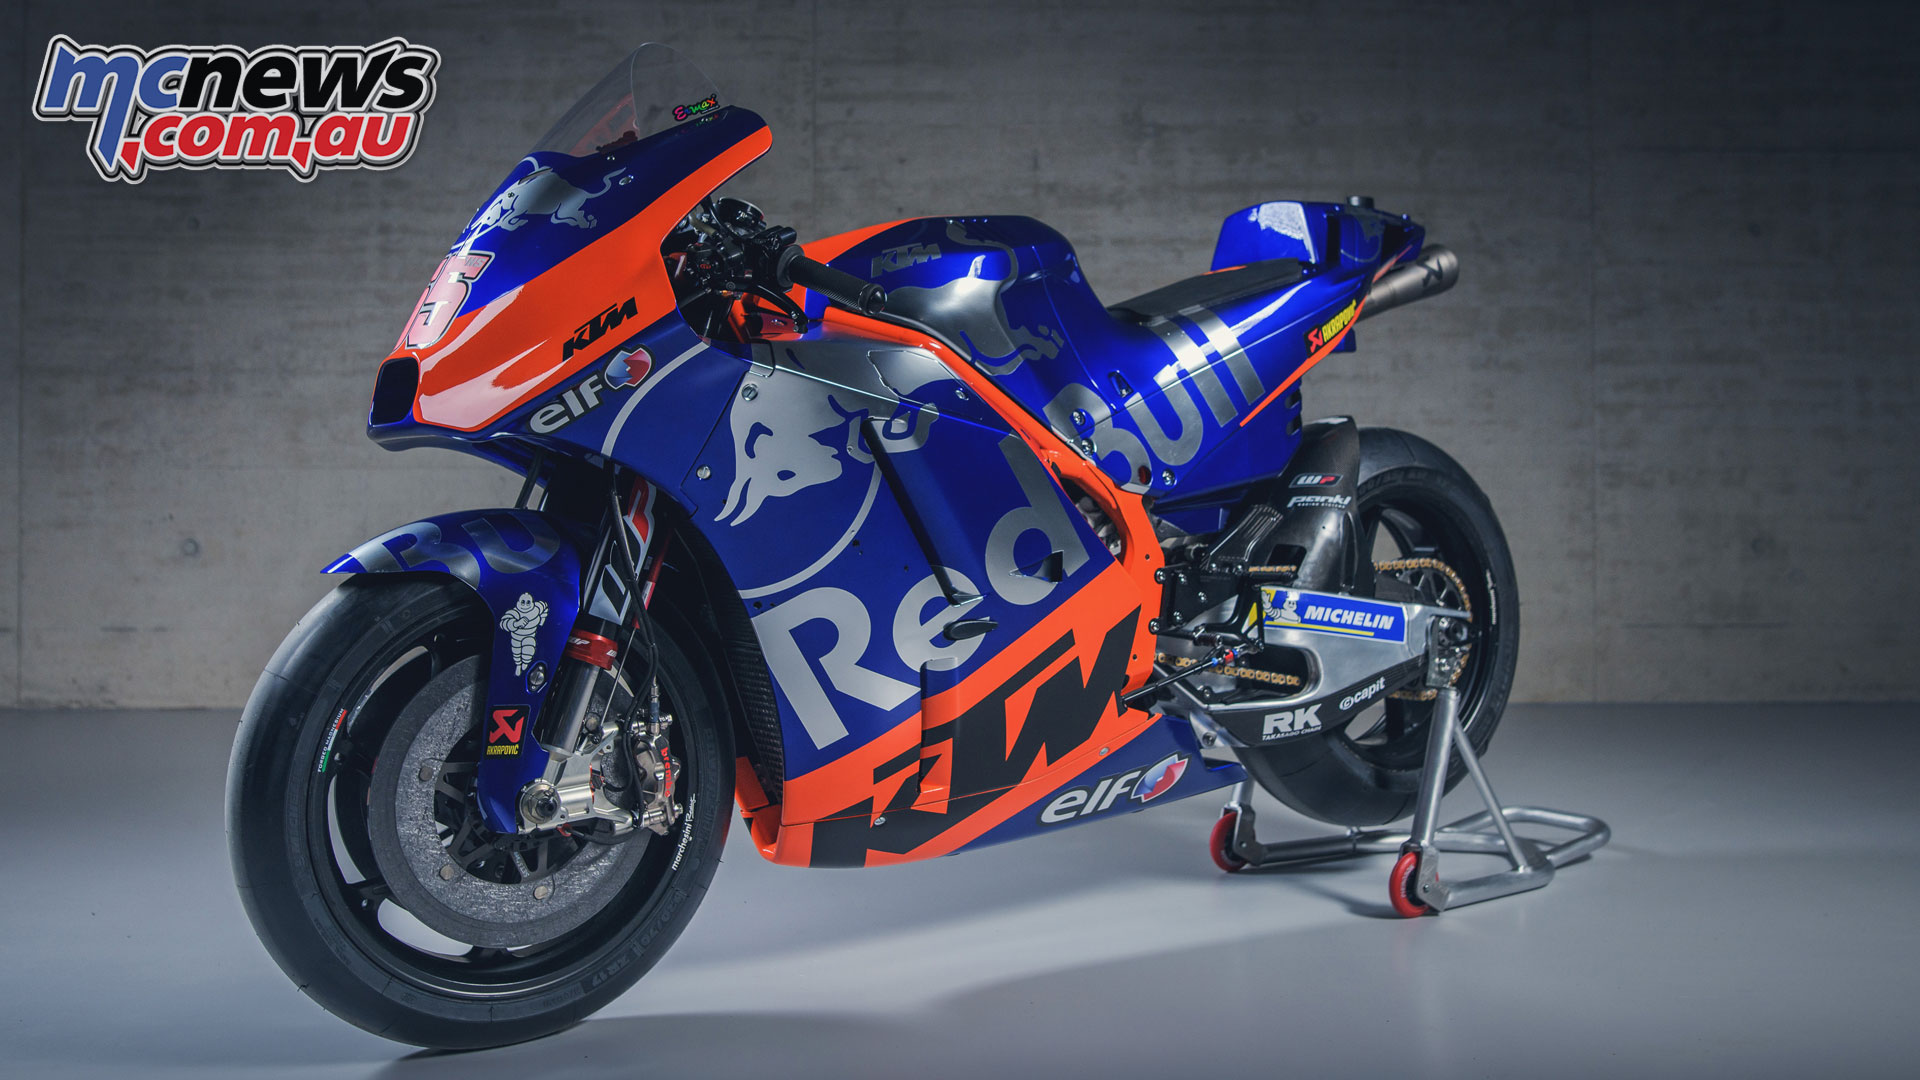 2019 Red Bull KTM MotoGP | Ready To Race | MCNews.com.au